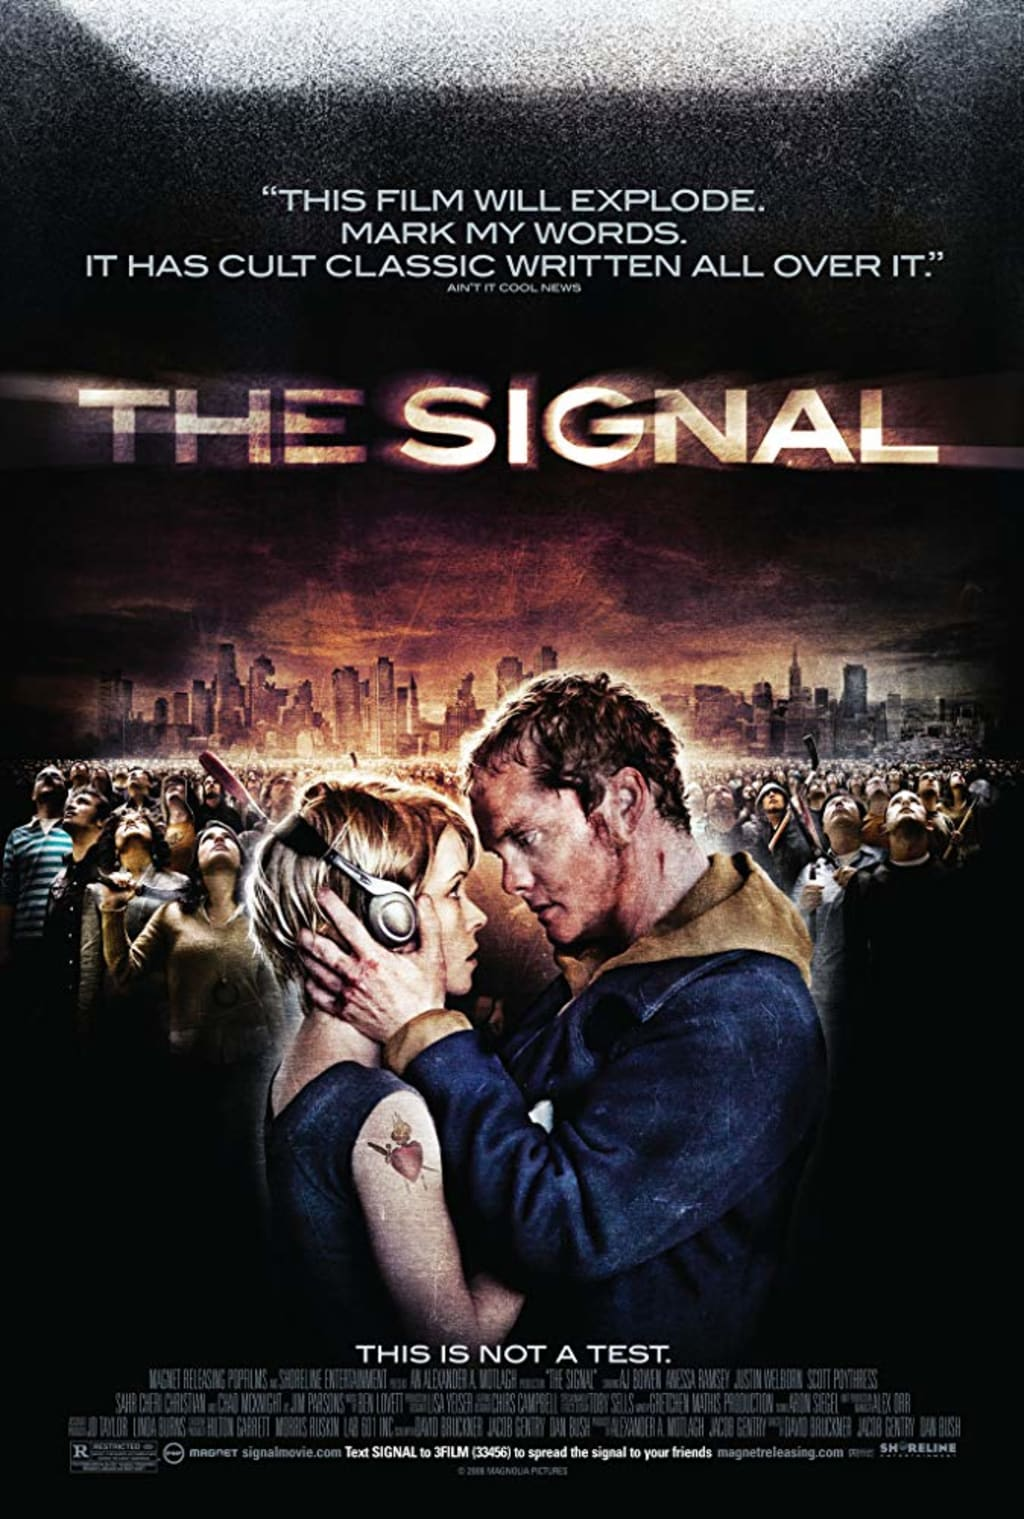 Reed Alexander's Horror Review of 'The Signal' (2007)